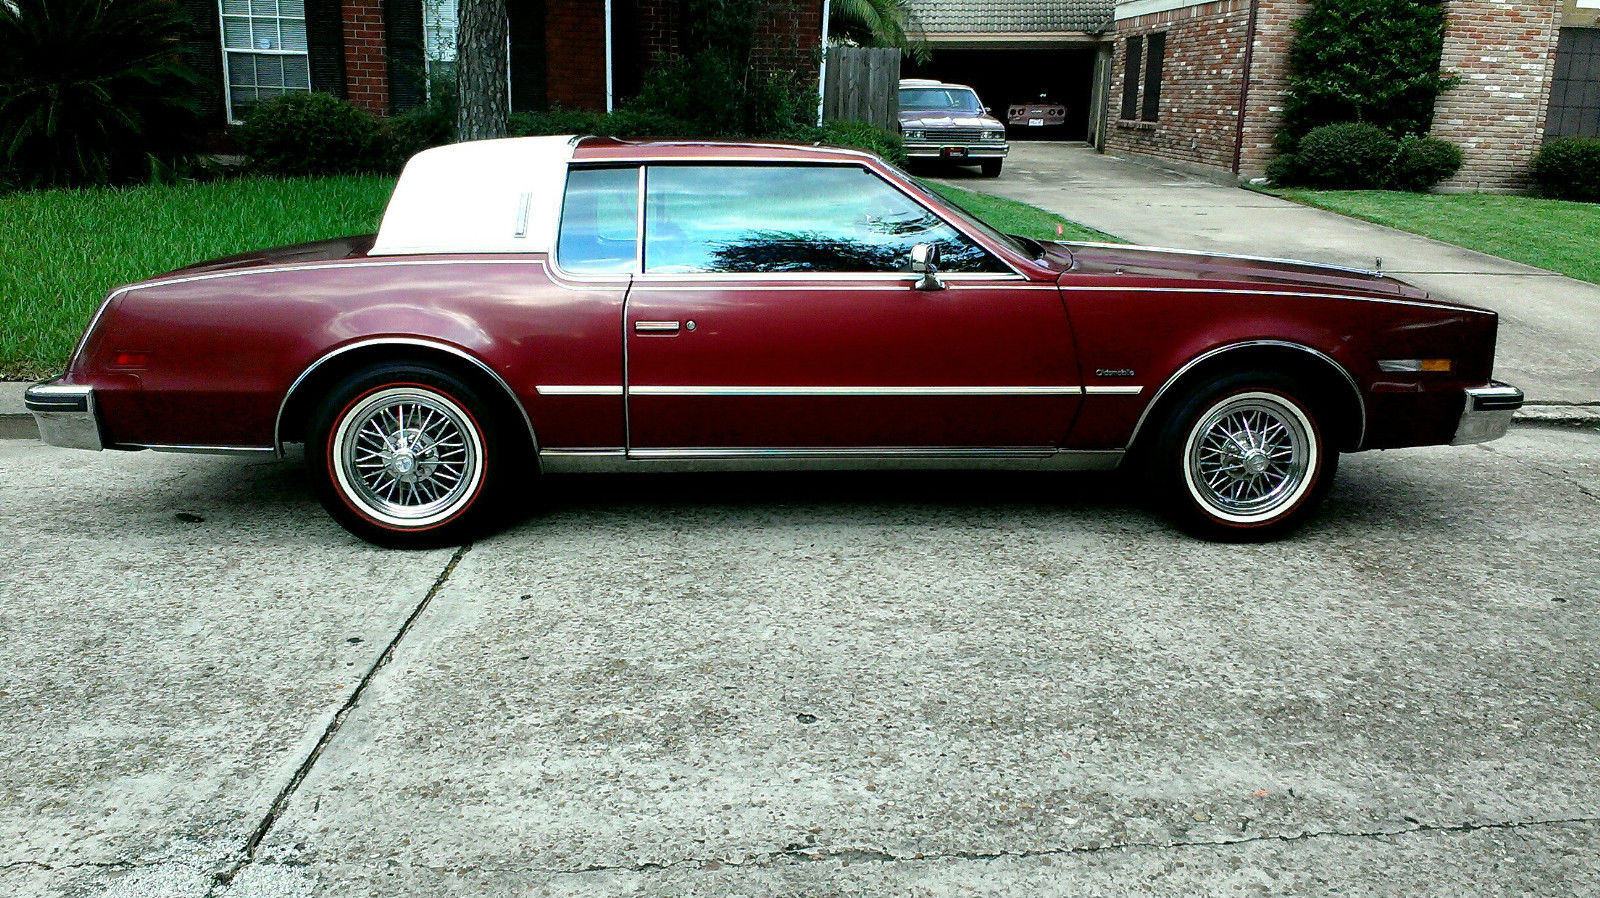 Texan Wire Wheels For Sale | 1985 Oldsmobile Toronado 44k Act Mls Previously A 1 Owner Car Texan